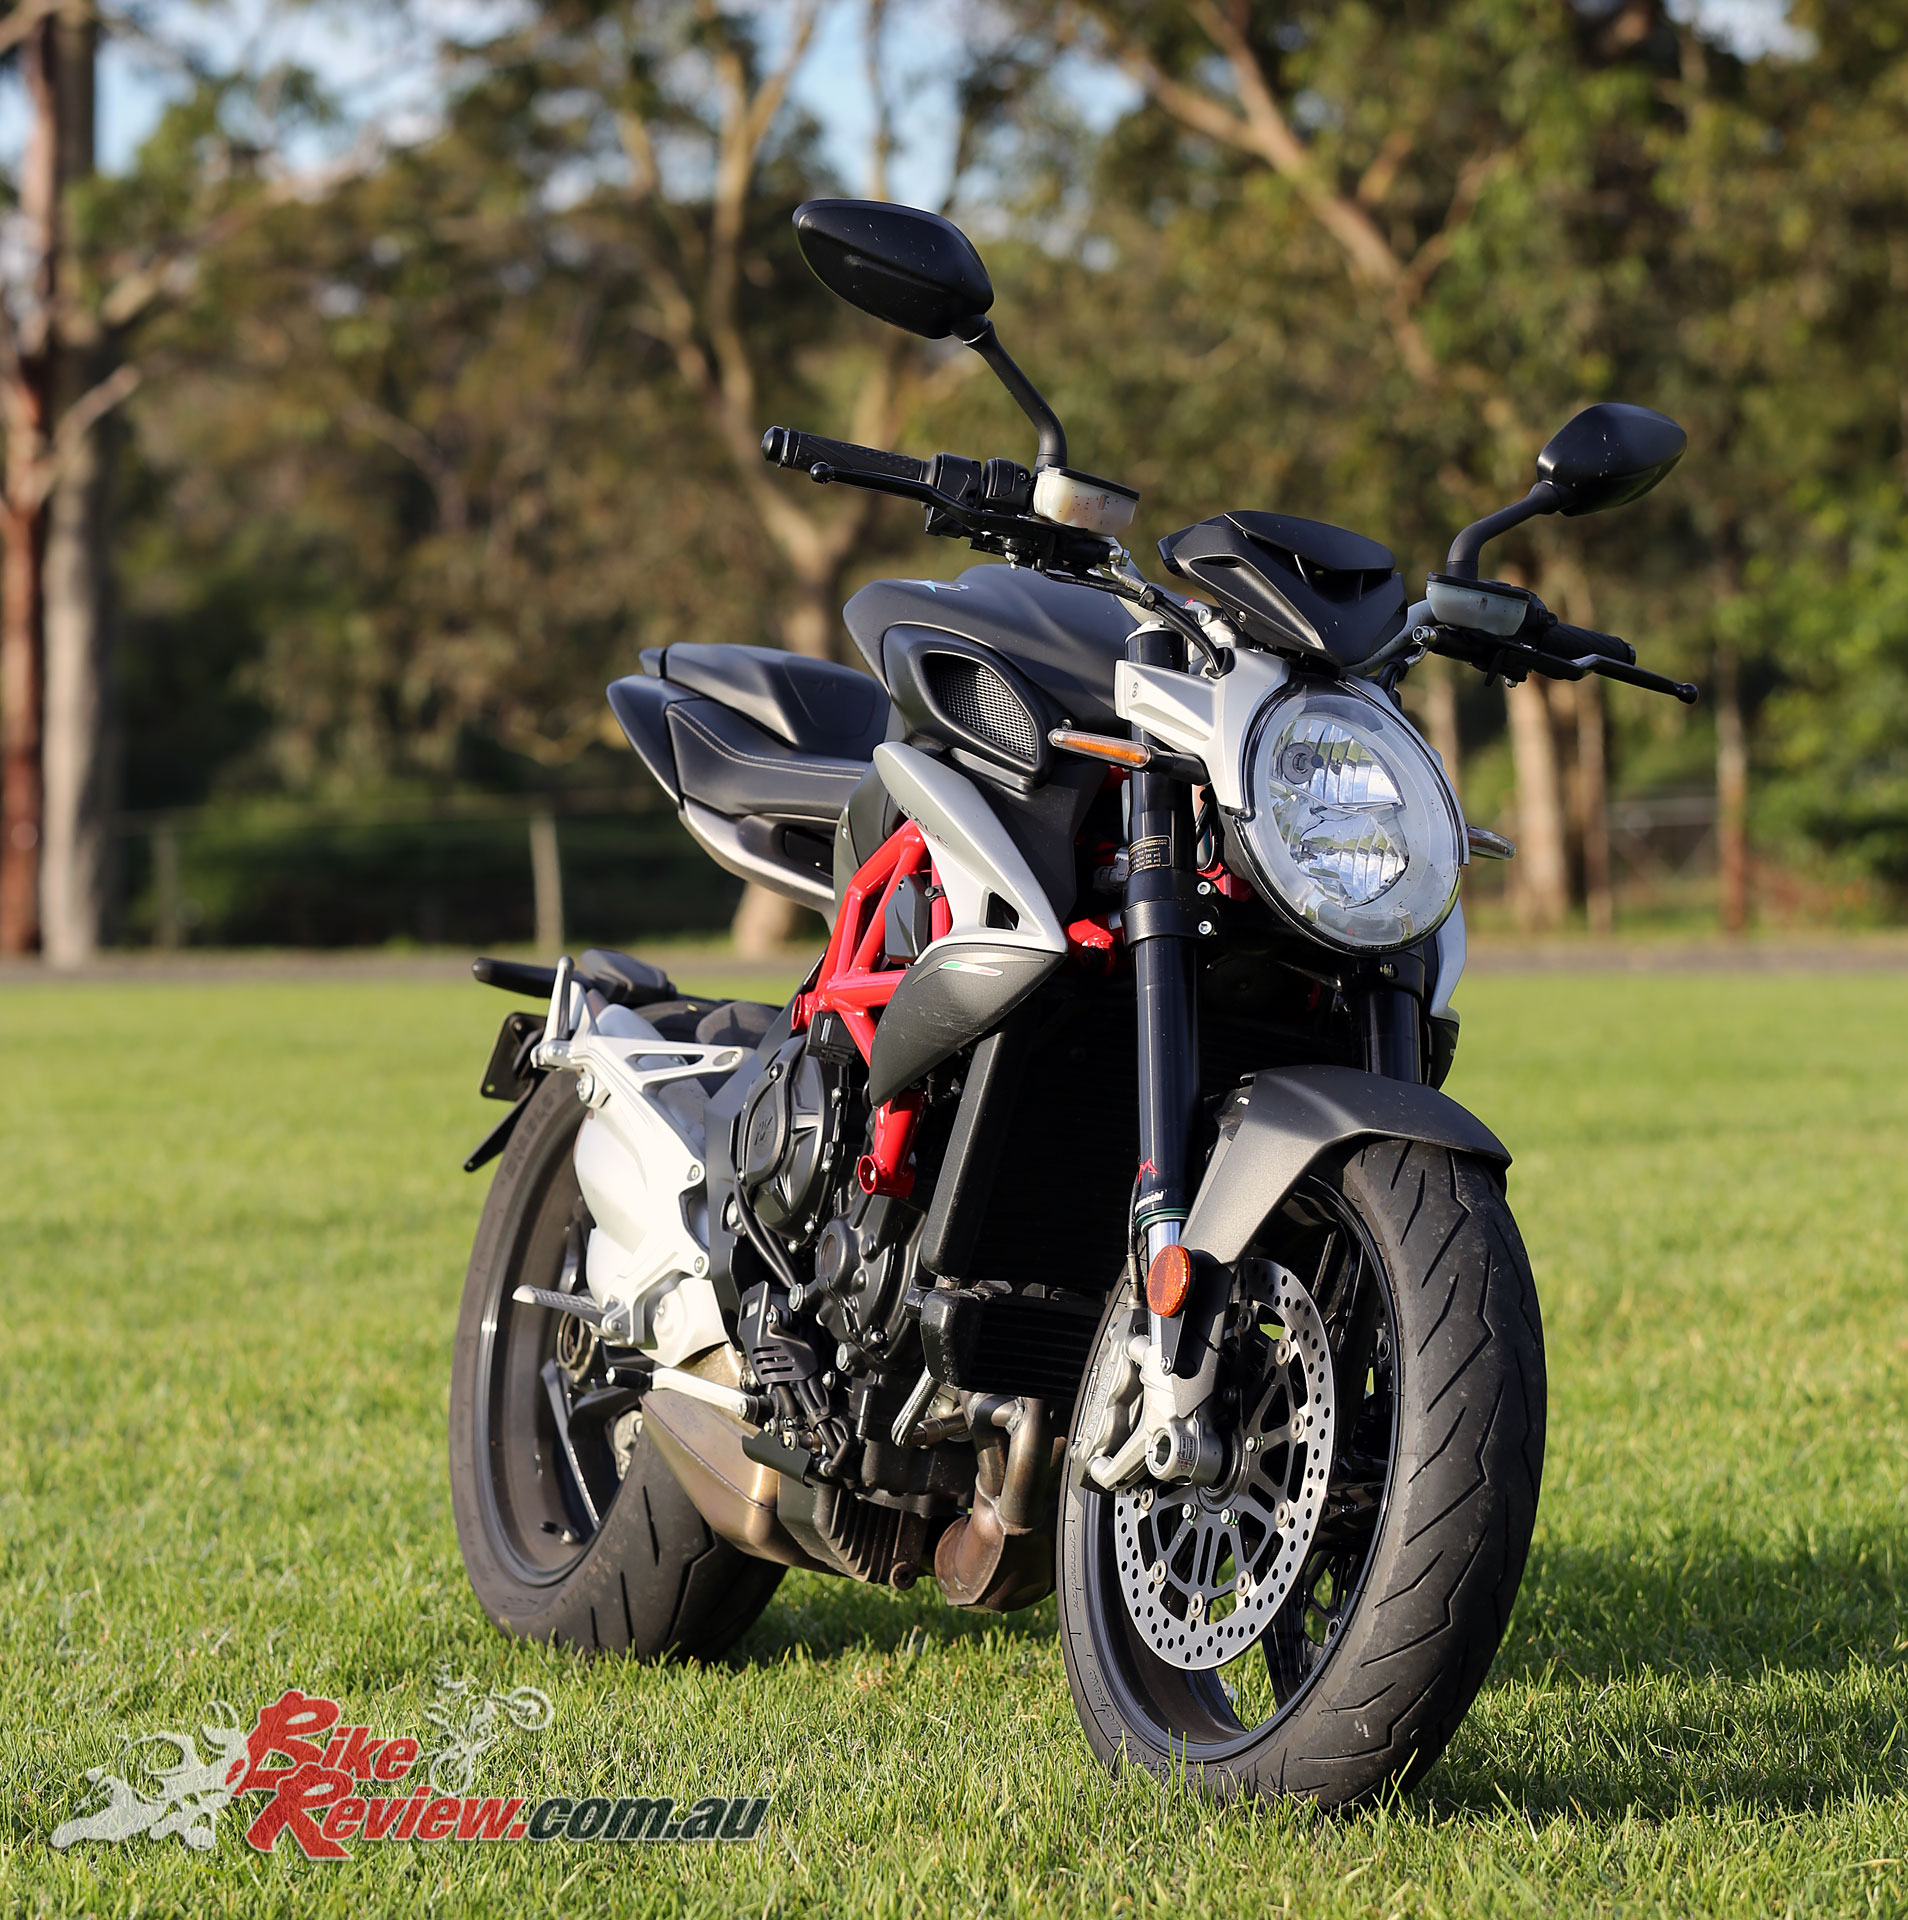 Review: 2017 MV Agusta Brutale 800 - Bike Review